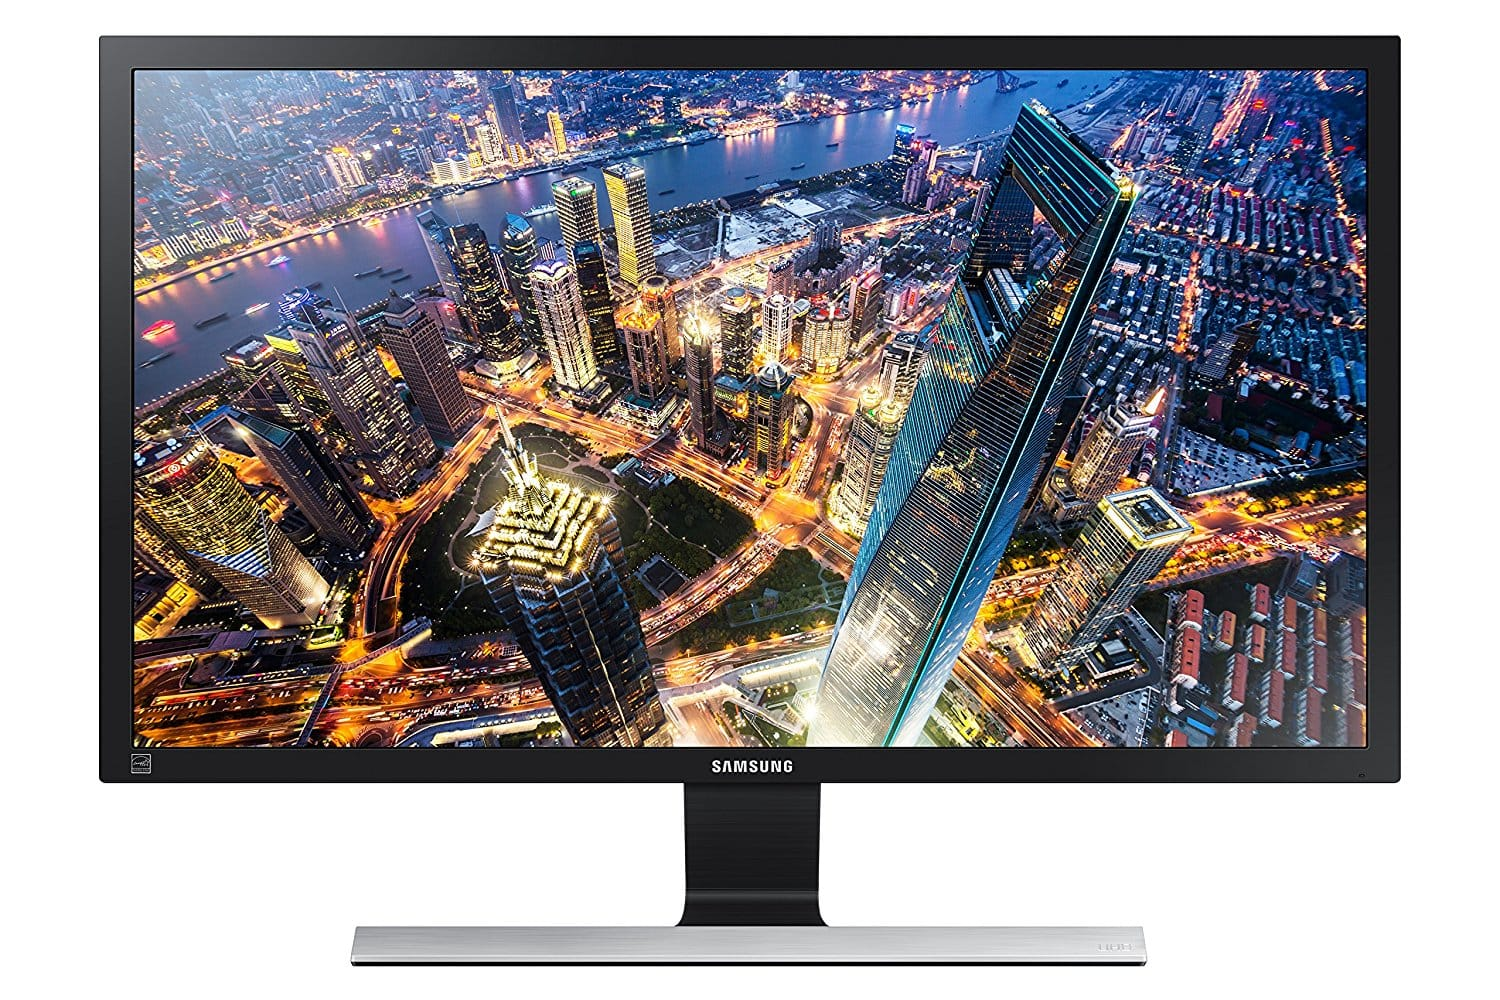 Samsung U28E590D 28-Inch UHD LED-Lit Monitor - $289.99 - Amazon Free Shipping